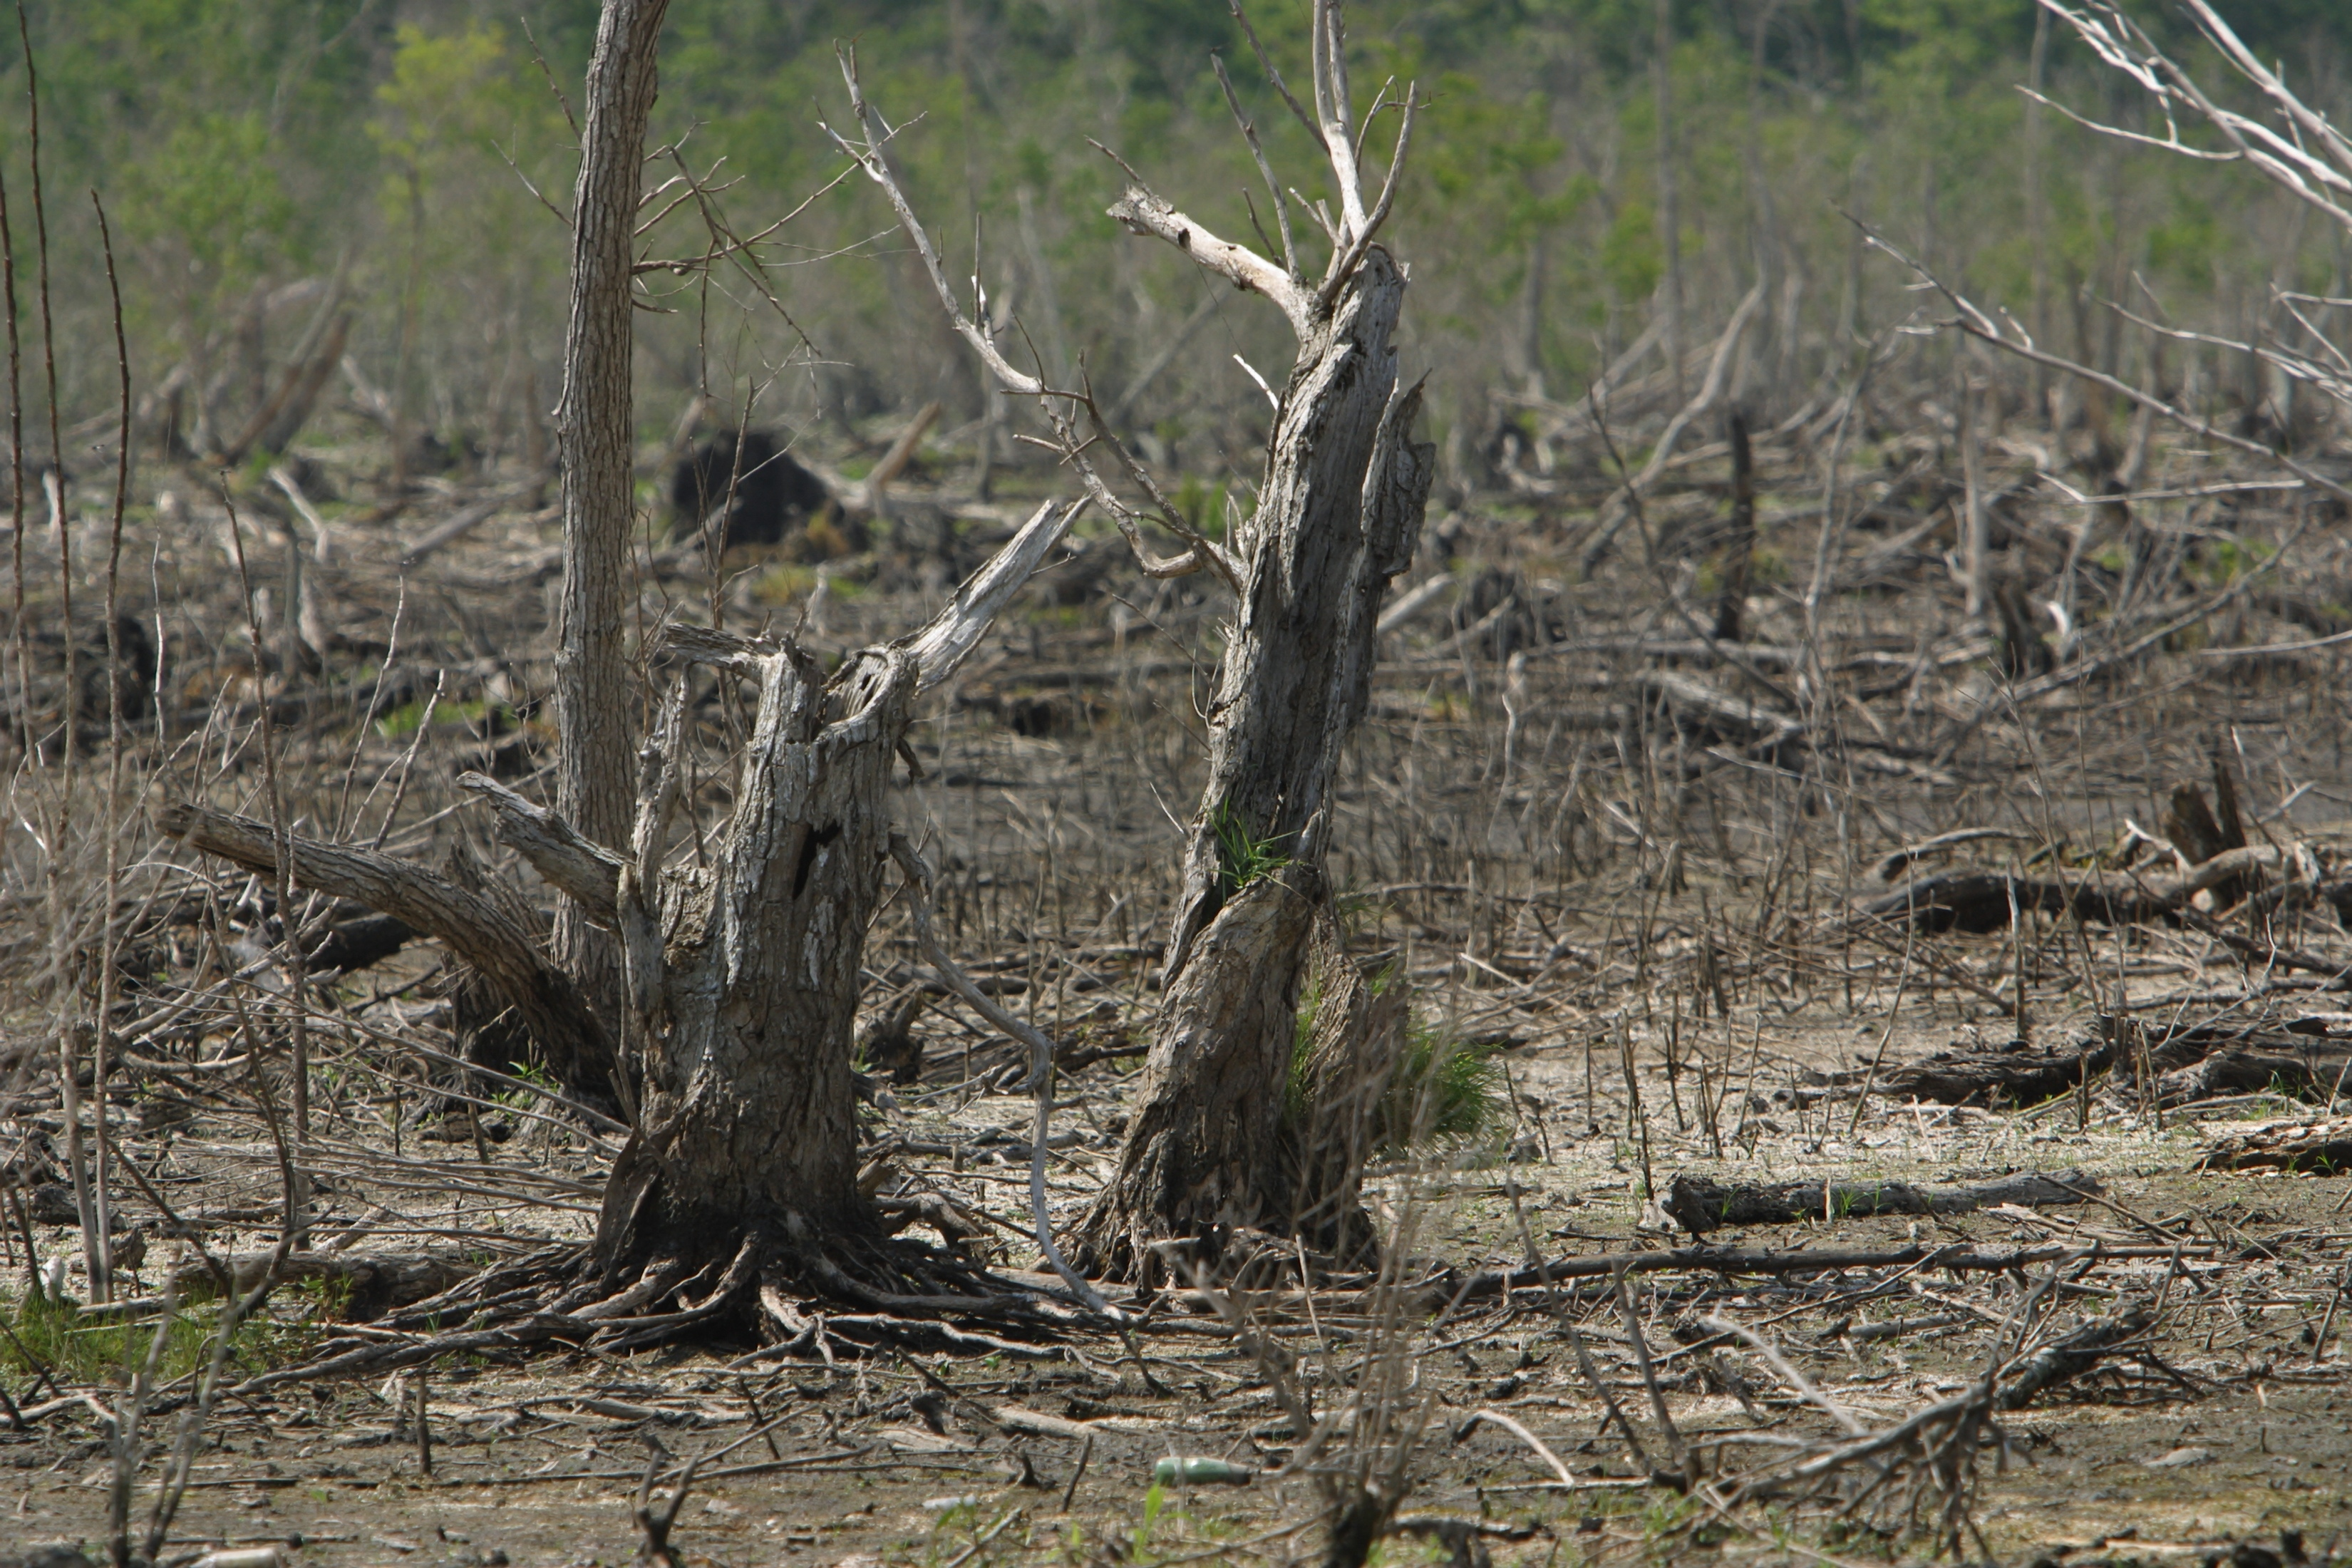 Four Consequences of Deforestation